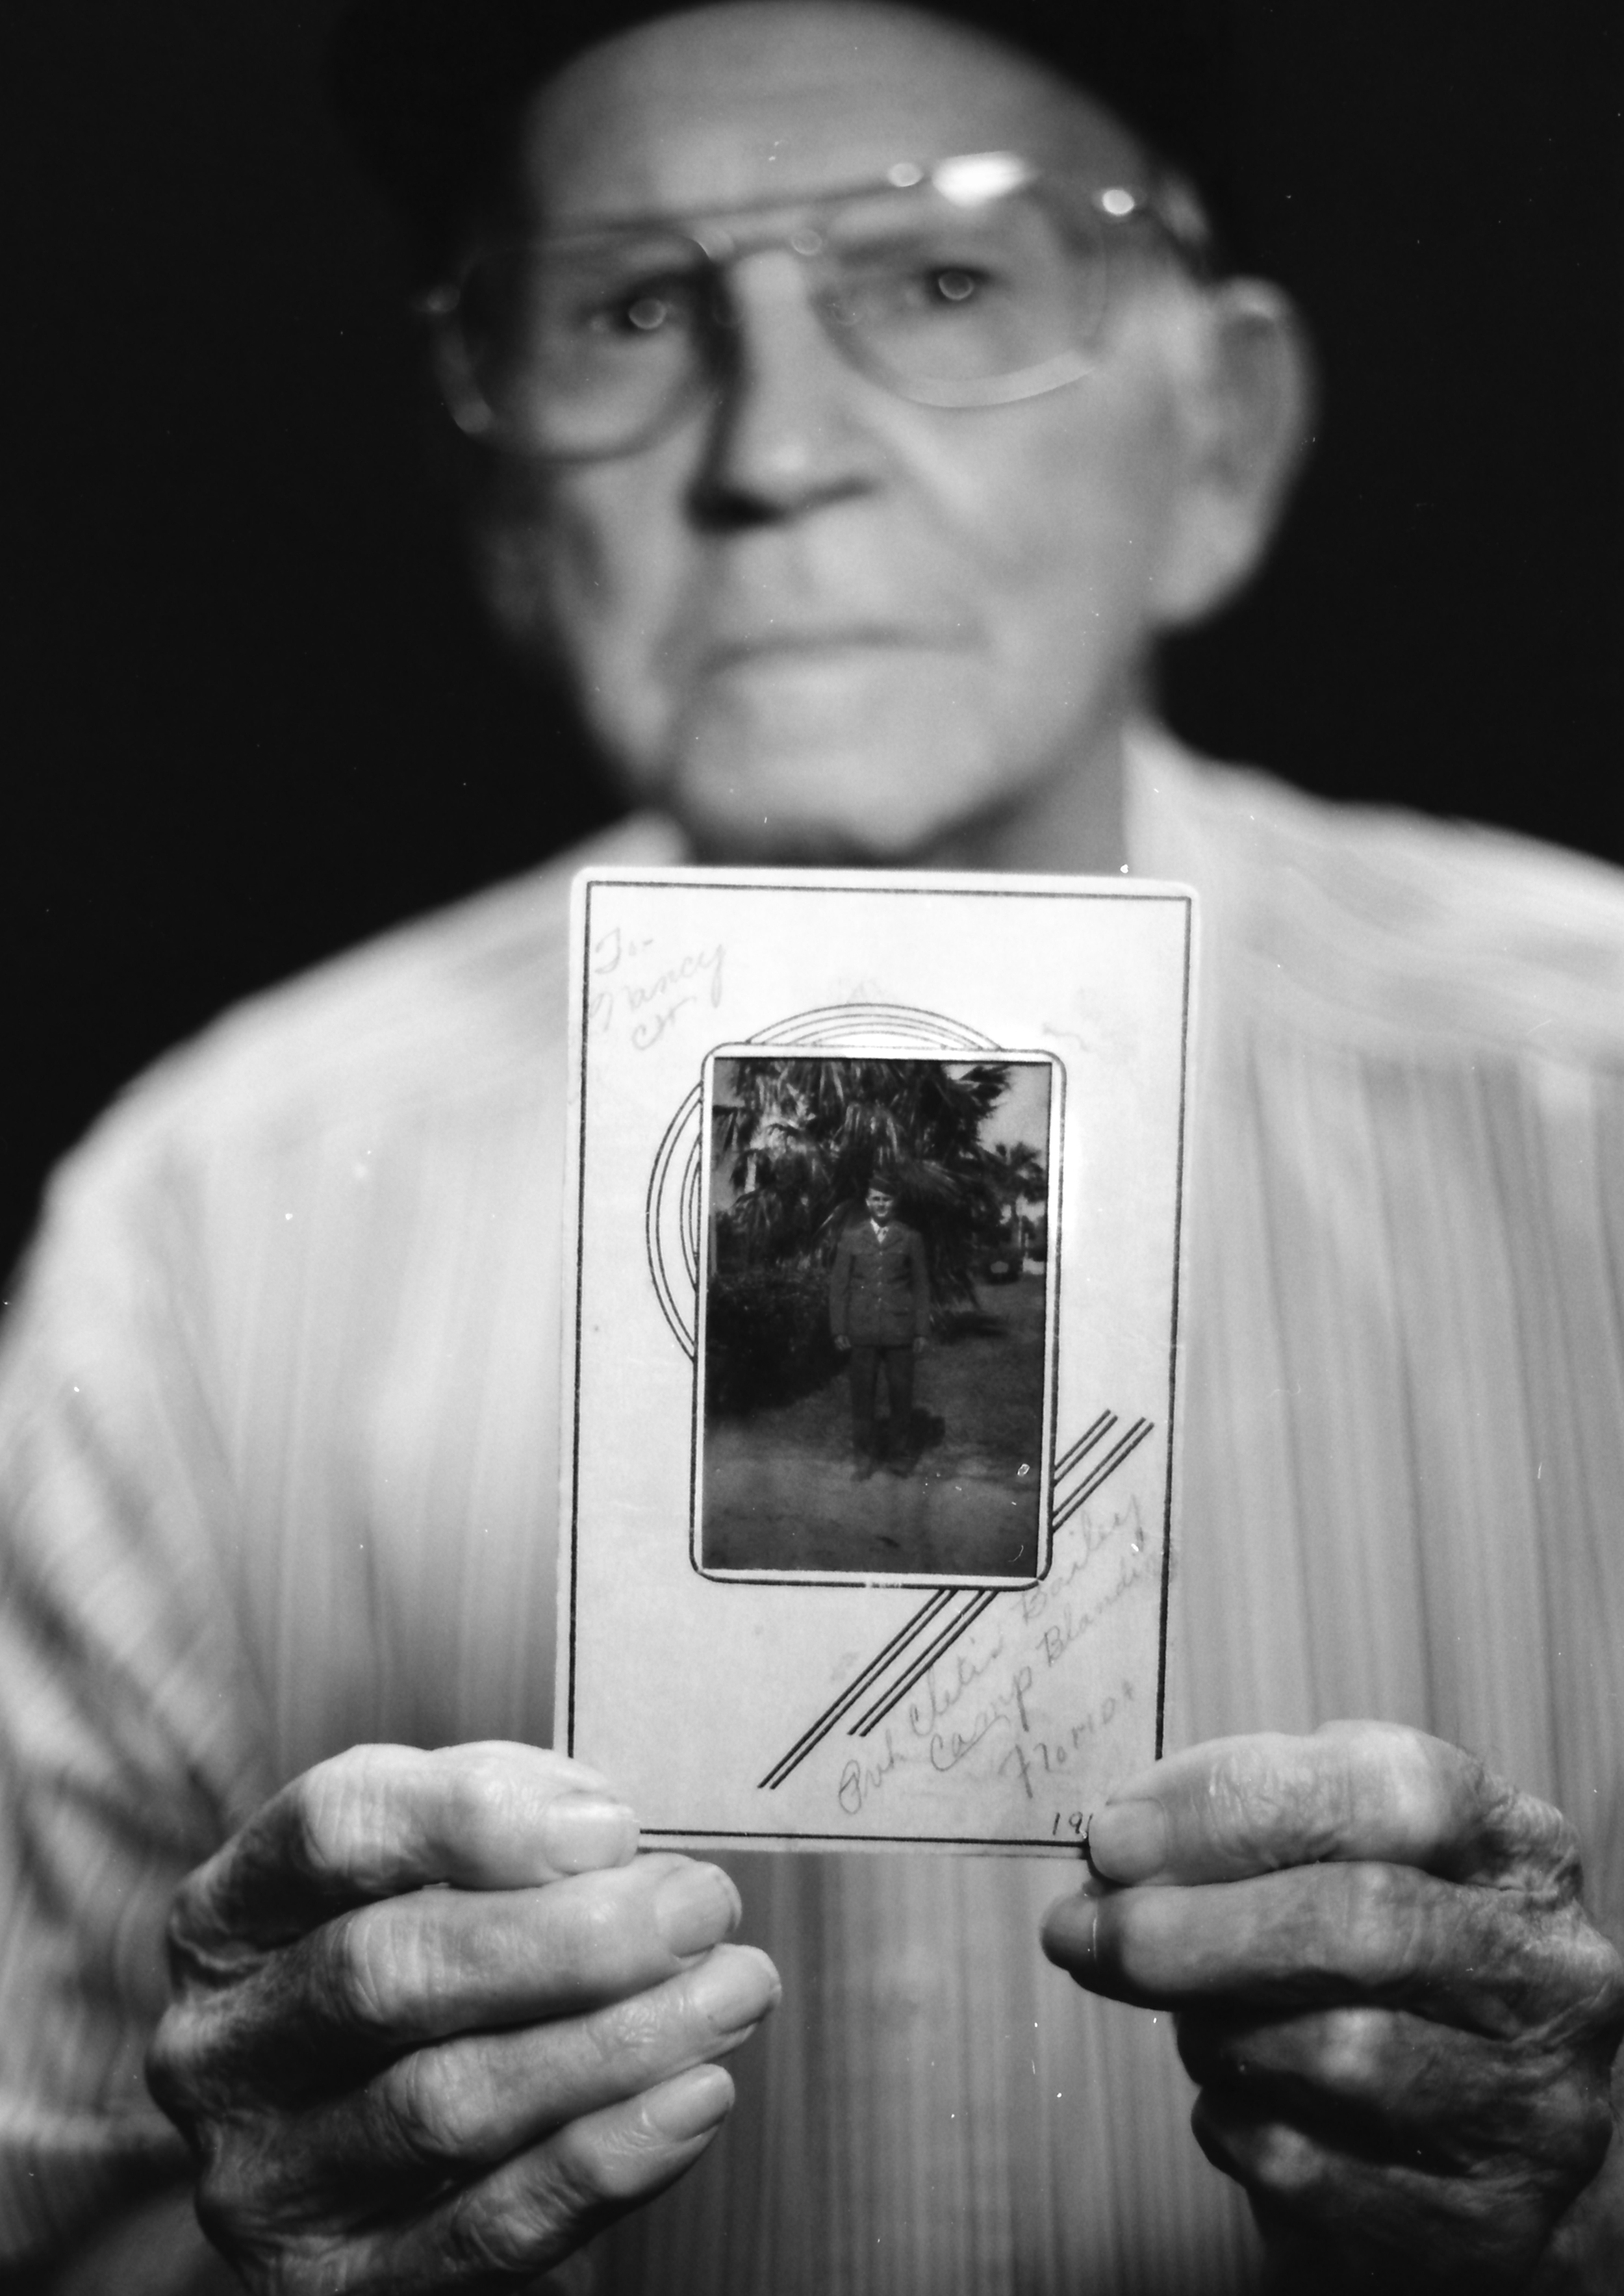 Master Sgt. Cletis Bailey - Air Force holding a photo from his younger days. Photo by Ricky Davis of TRD Photography - FIlm - Tmax 100